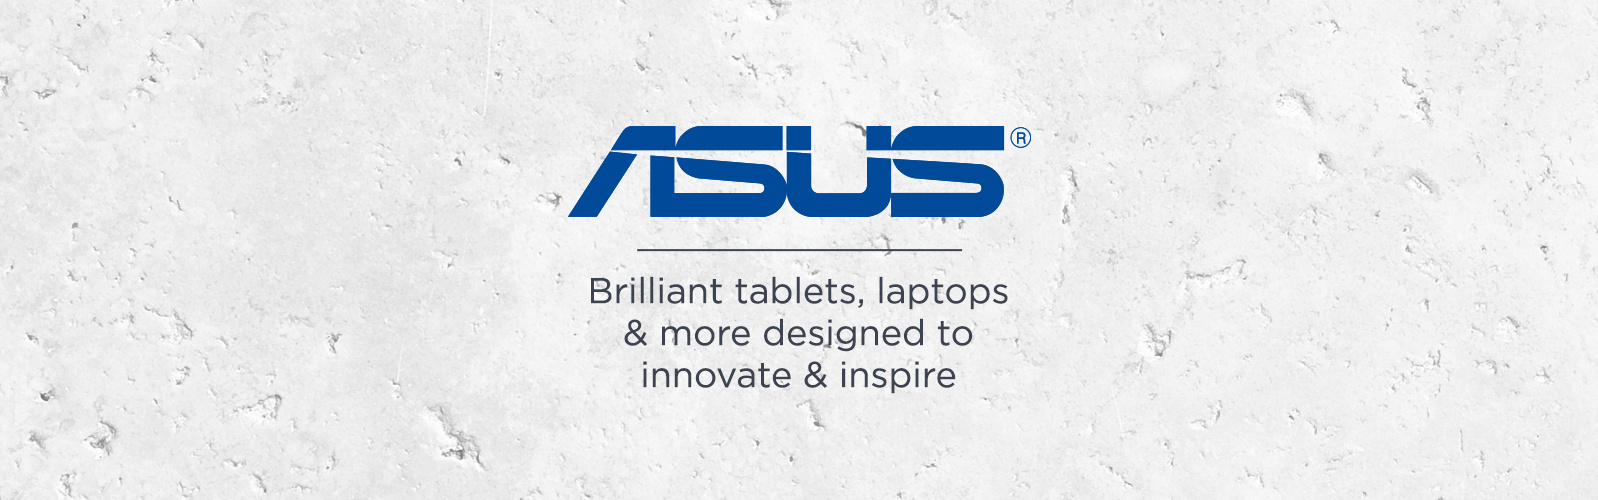 ASUS.  Brilliant tablets, laptops & more designed to innovate & inspire